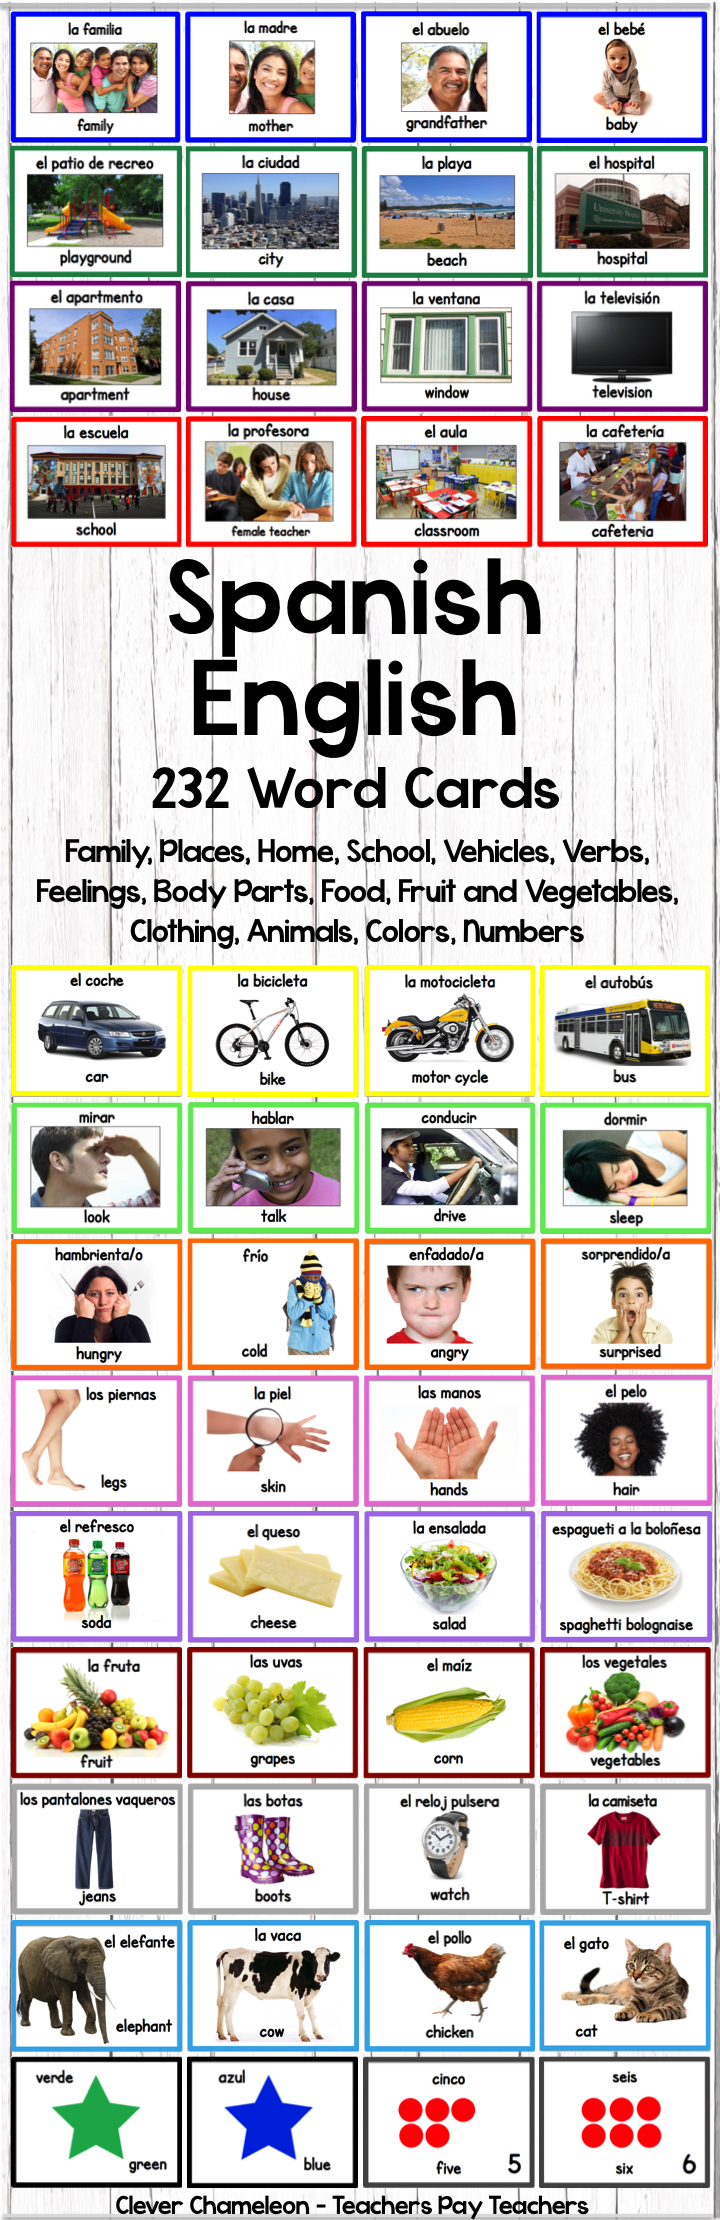 Spanish English Word Cards 232 Printable Cards In 14 Categories At Clever Chameleon Teachers Pay Teachers Word Cards Learning Spanish English Words [ 2220 x 720 Pixel ]